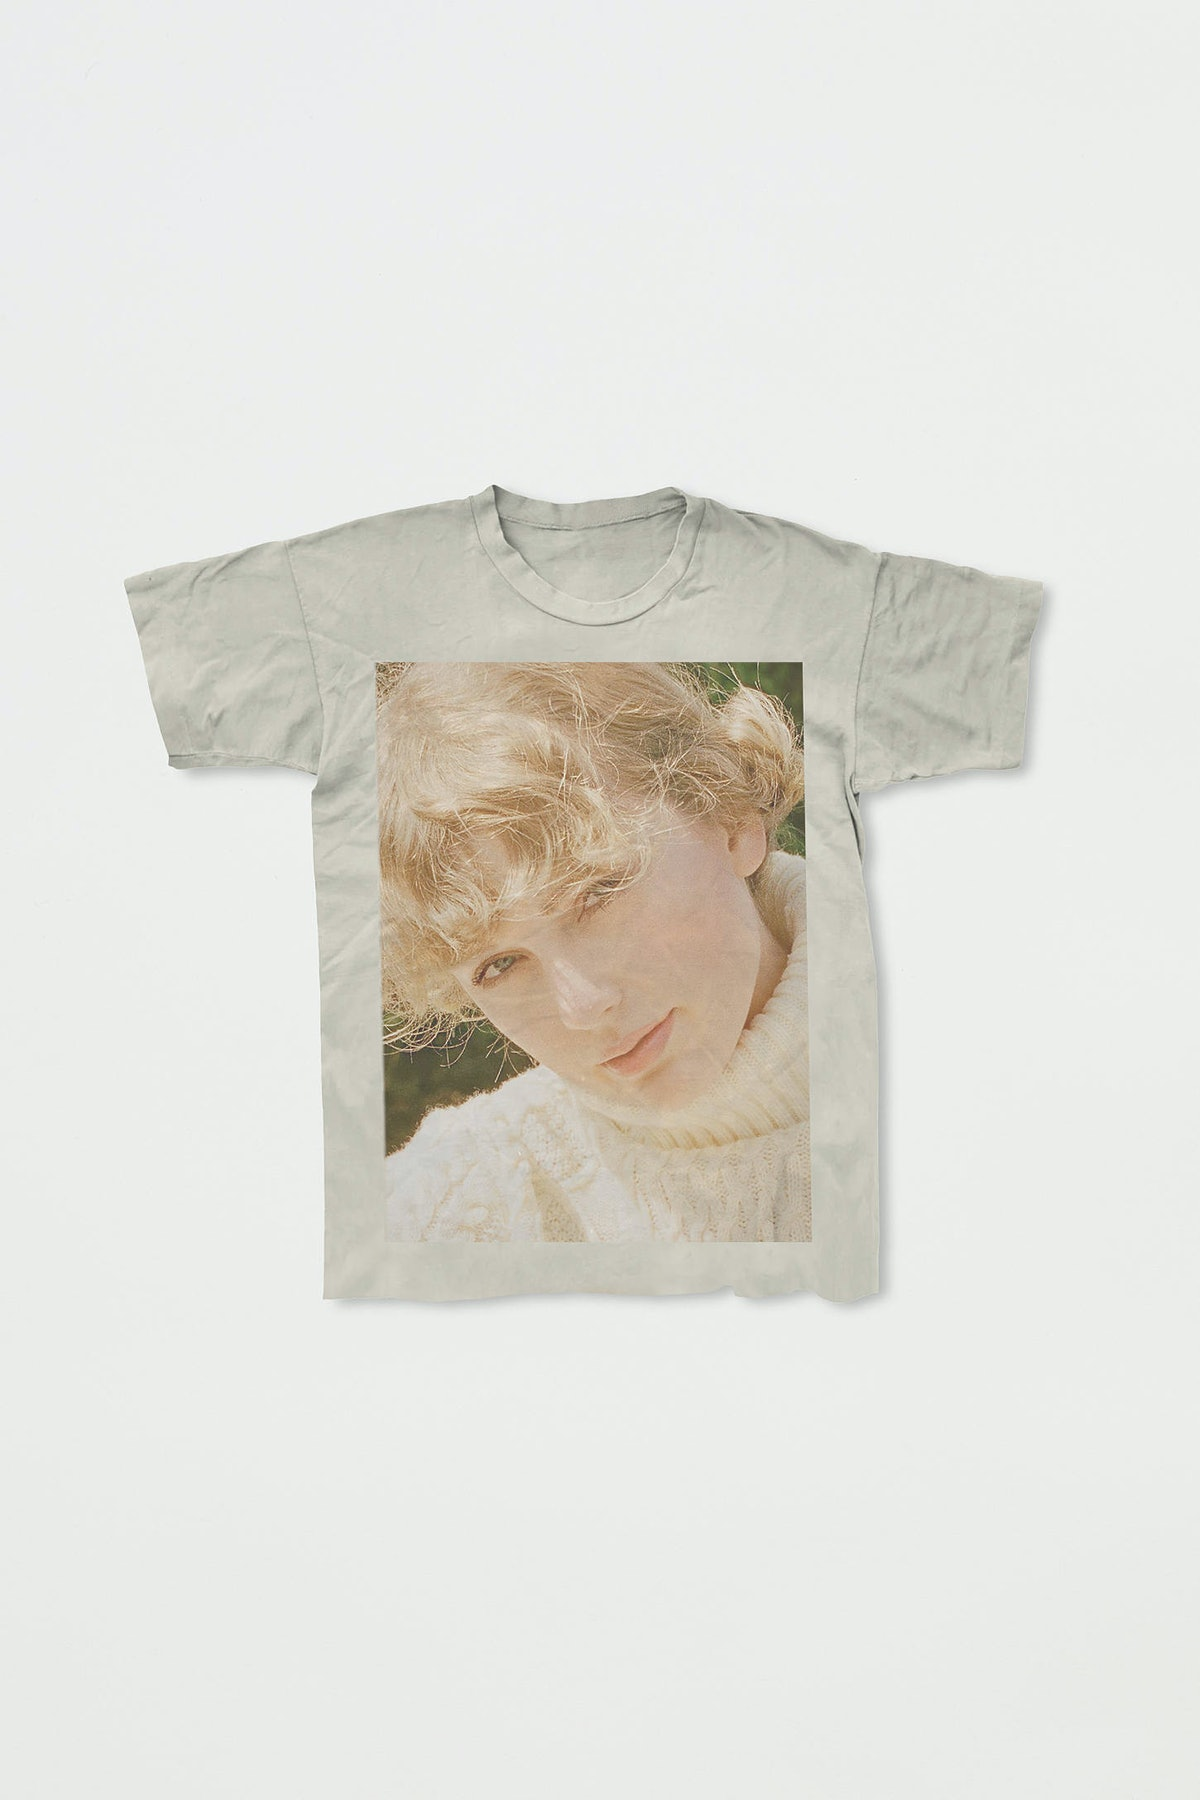 Taylor Swift Folklore Anniversary Collection UO Exclusive T-Shirt Dress